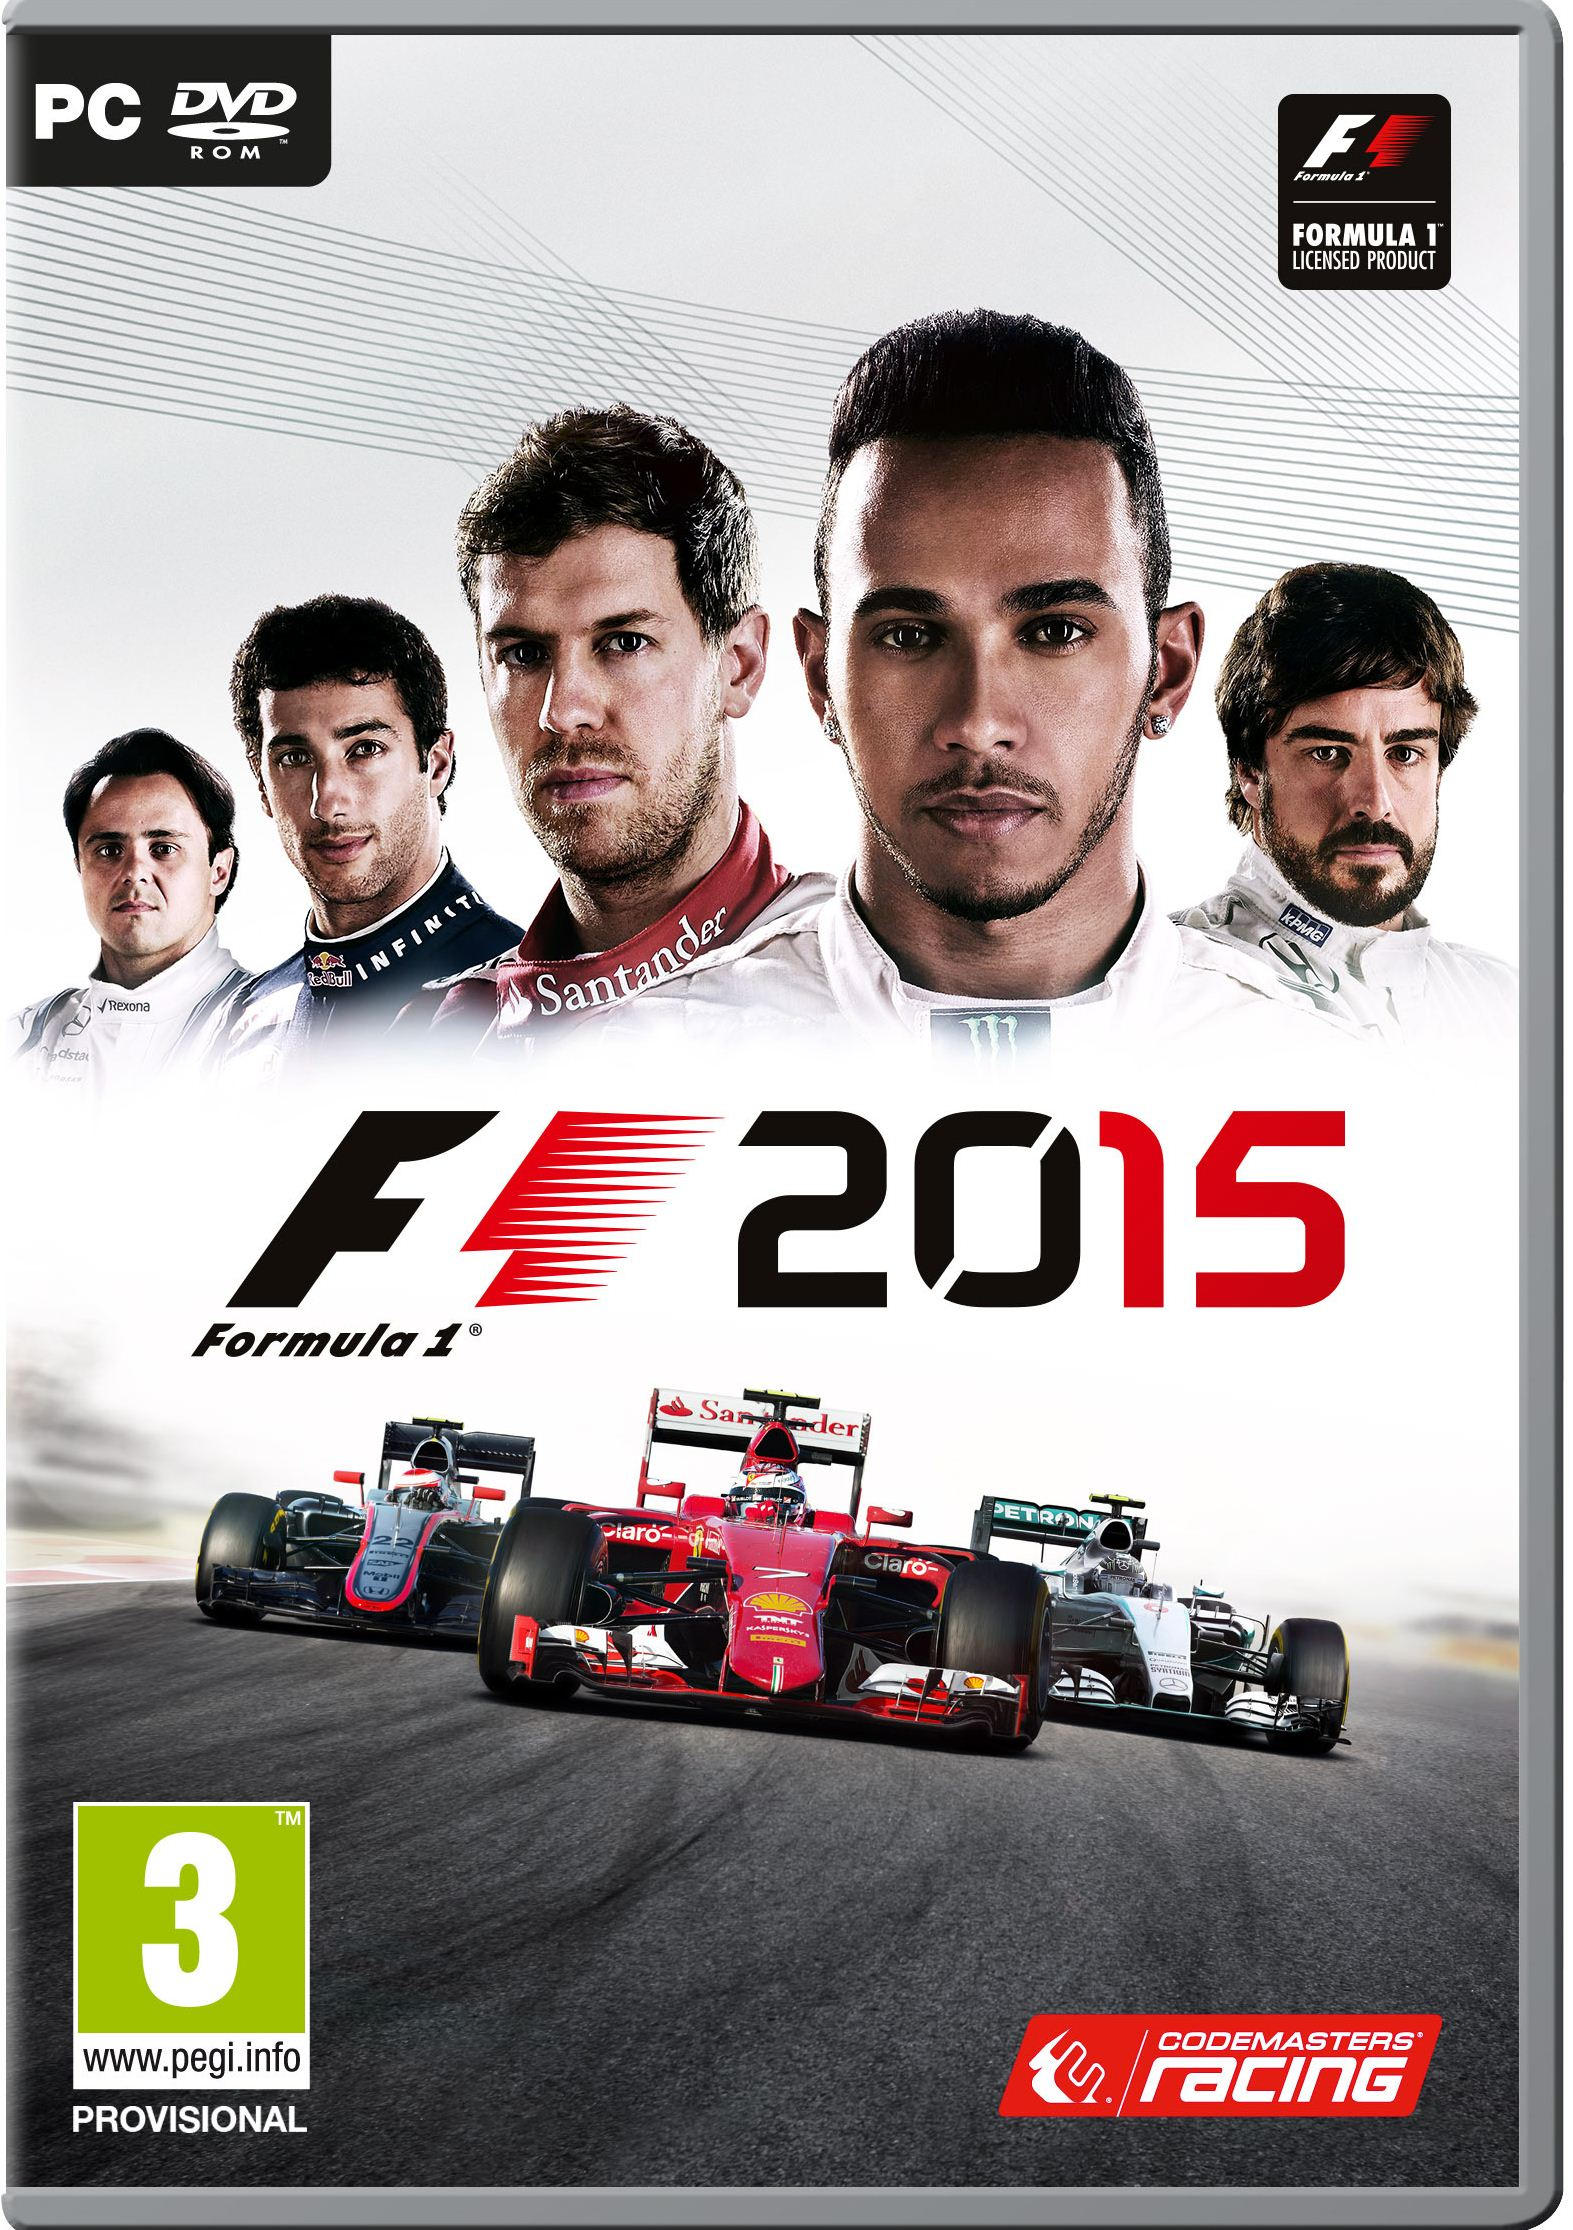 F1 2015 (Video Game) – News, Reviews, Videos, Screenshots And Wiki